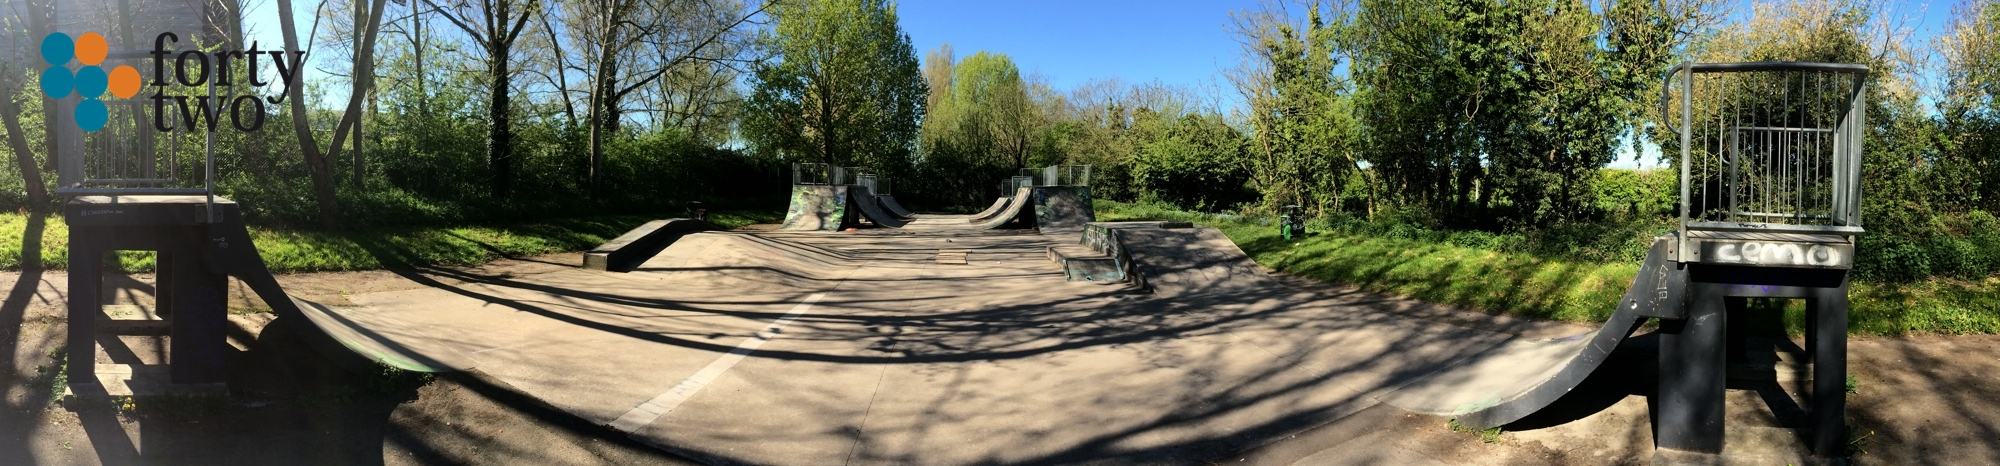 Keyworth skatepark Nottingham